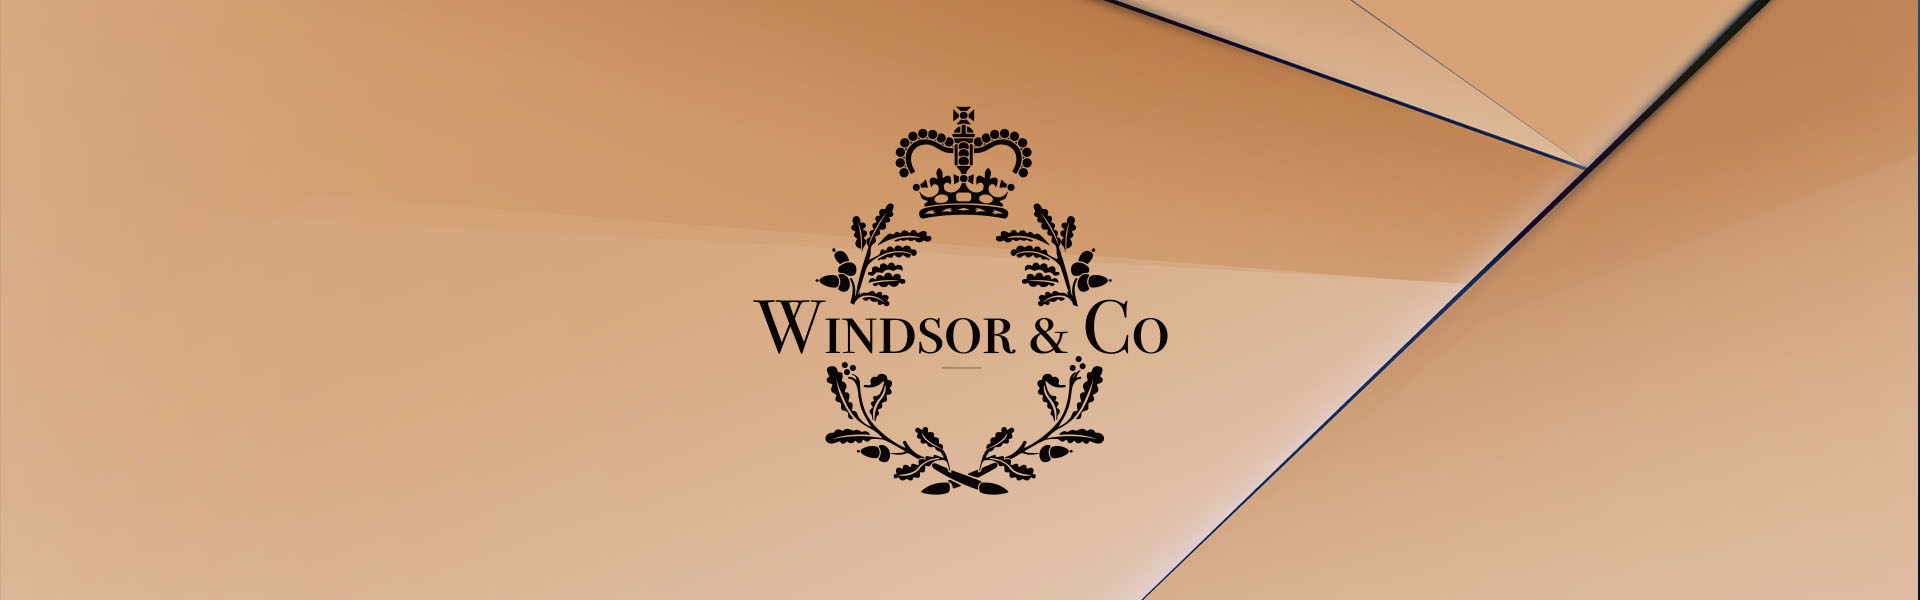 Pufas su daiktadėže Windsor and Co Astro 130, tamsiai pilkas                             Windsor and Co